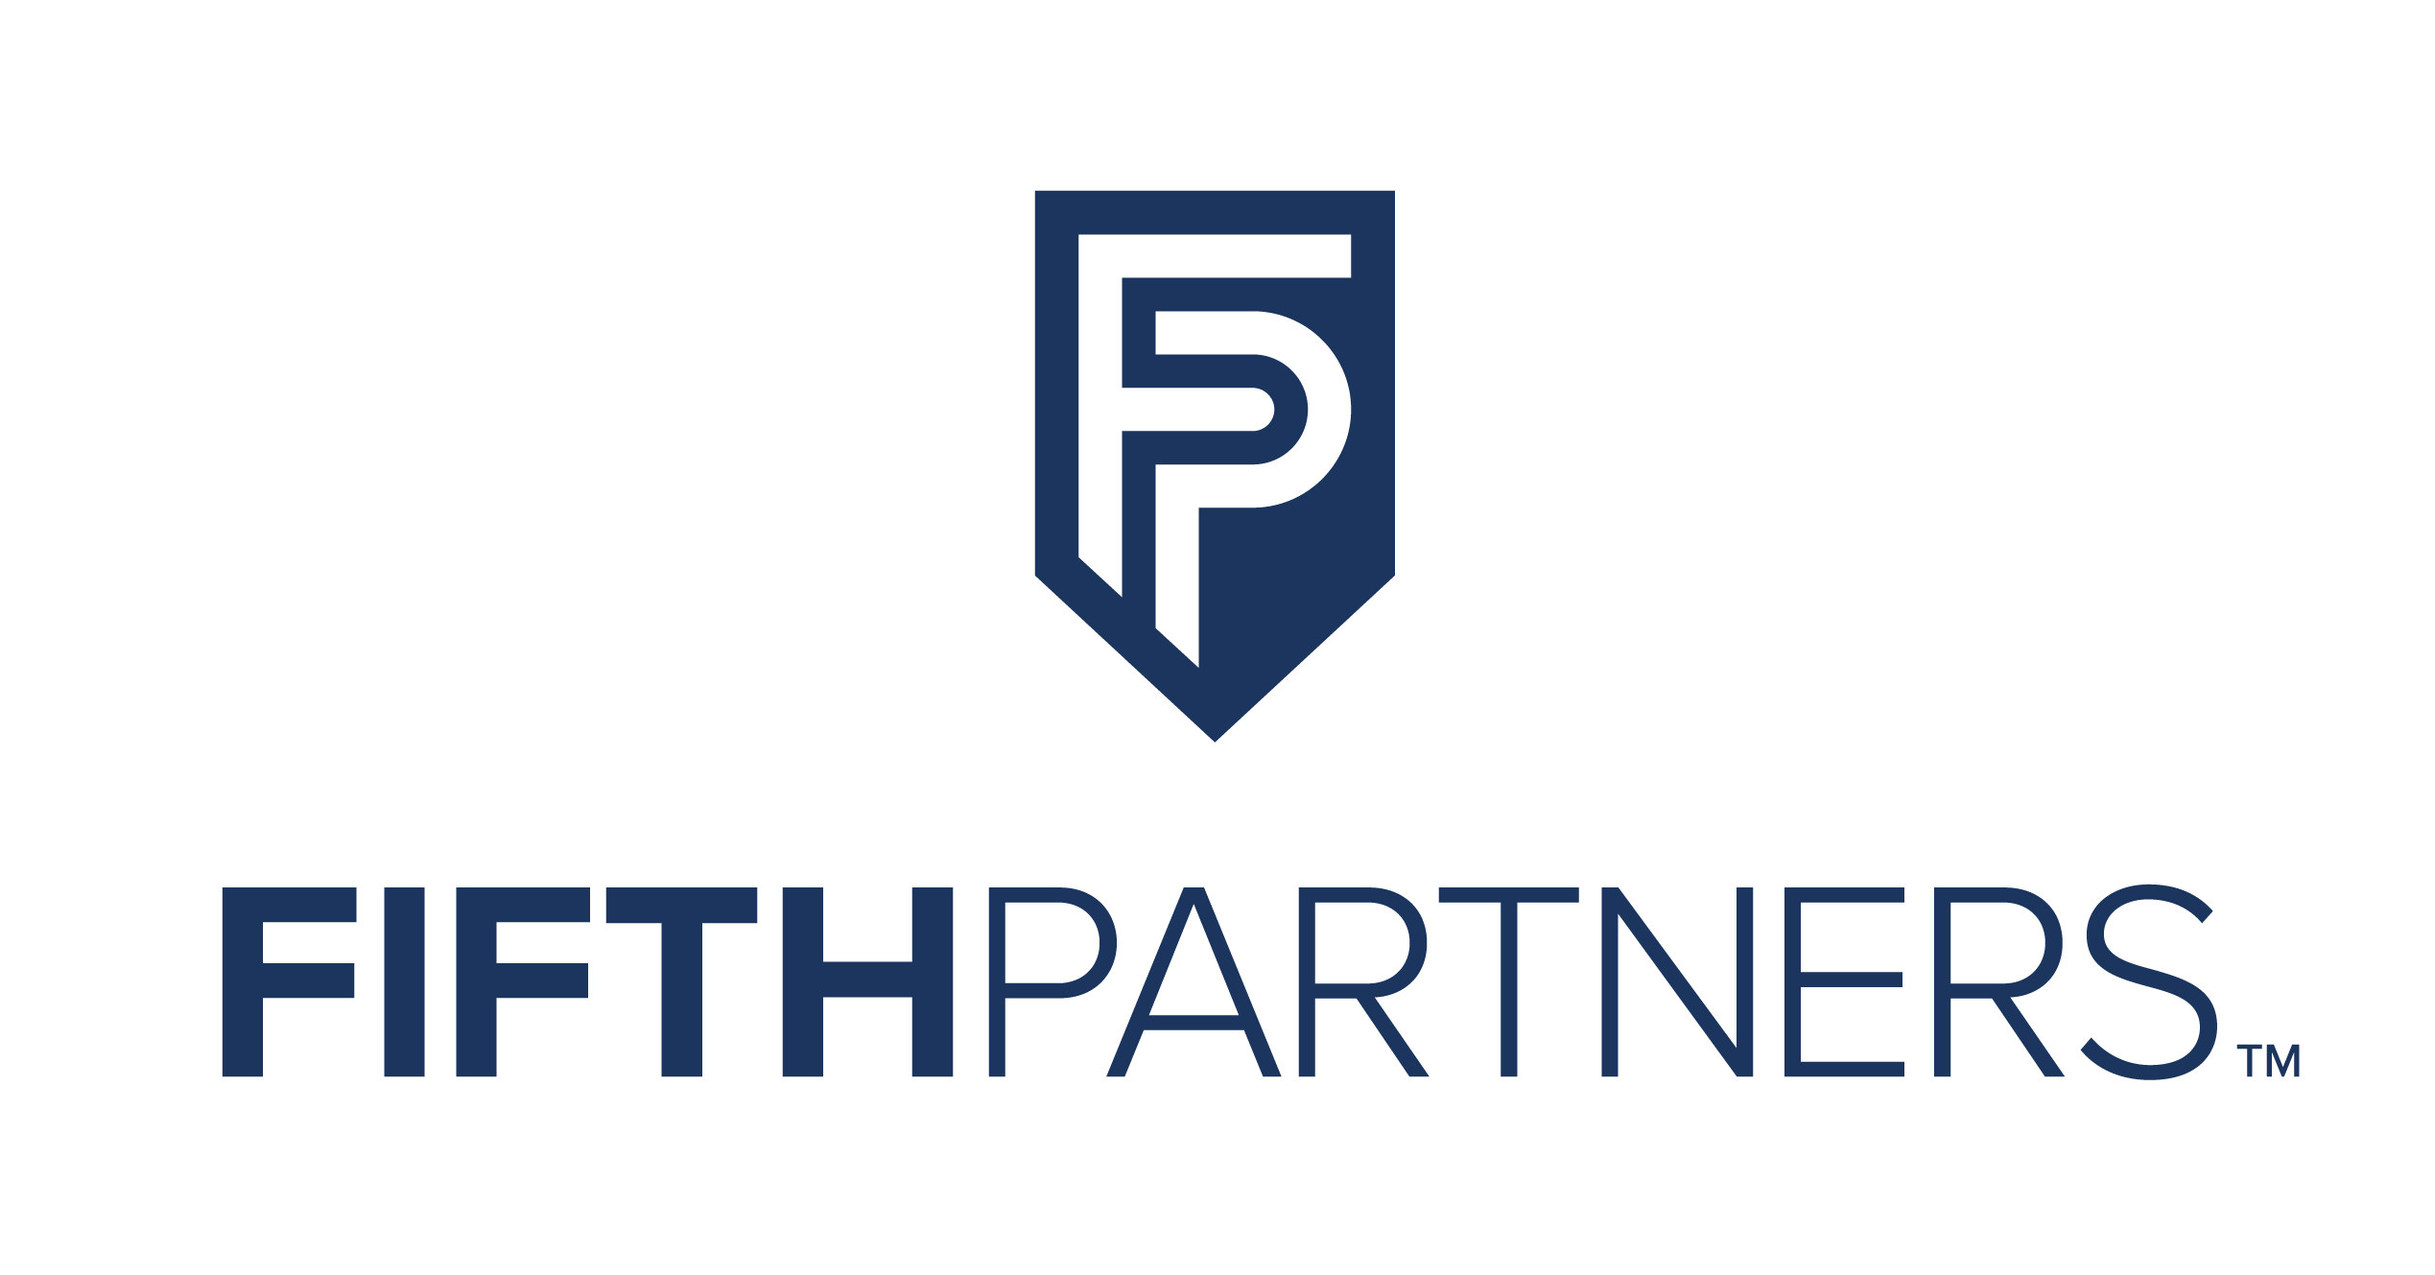 Fifth Partners Network Company Imagination Unwired Merges With DigitalReef